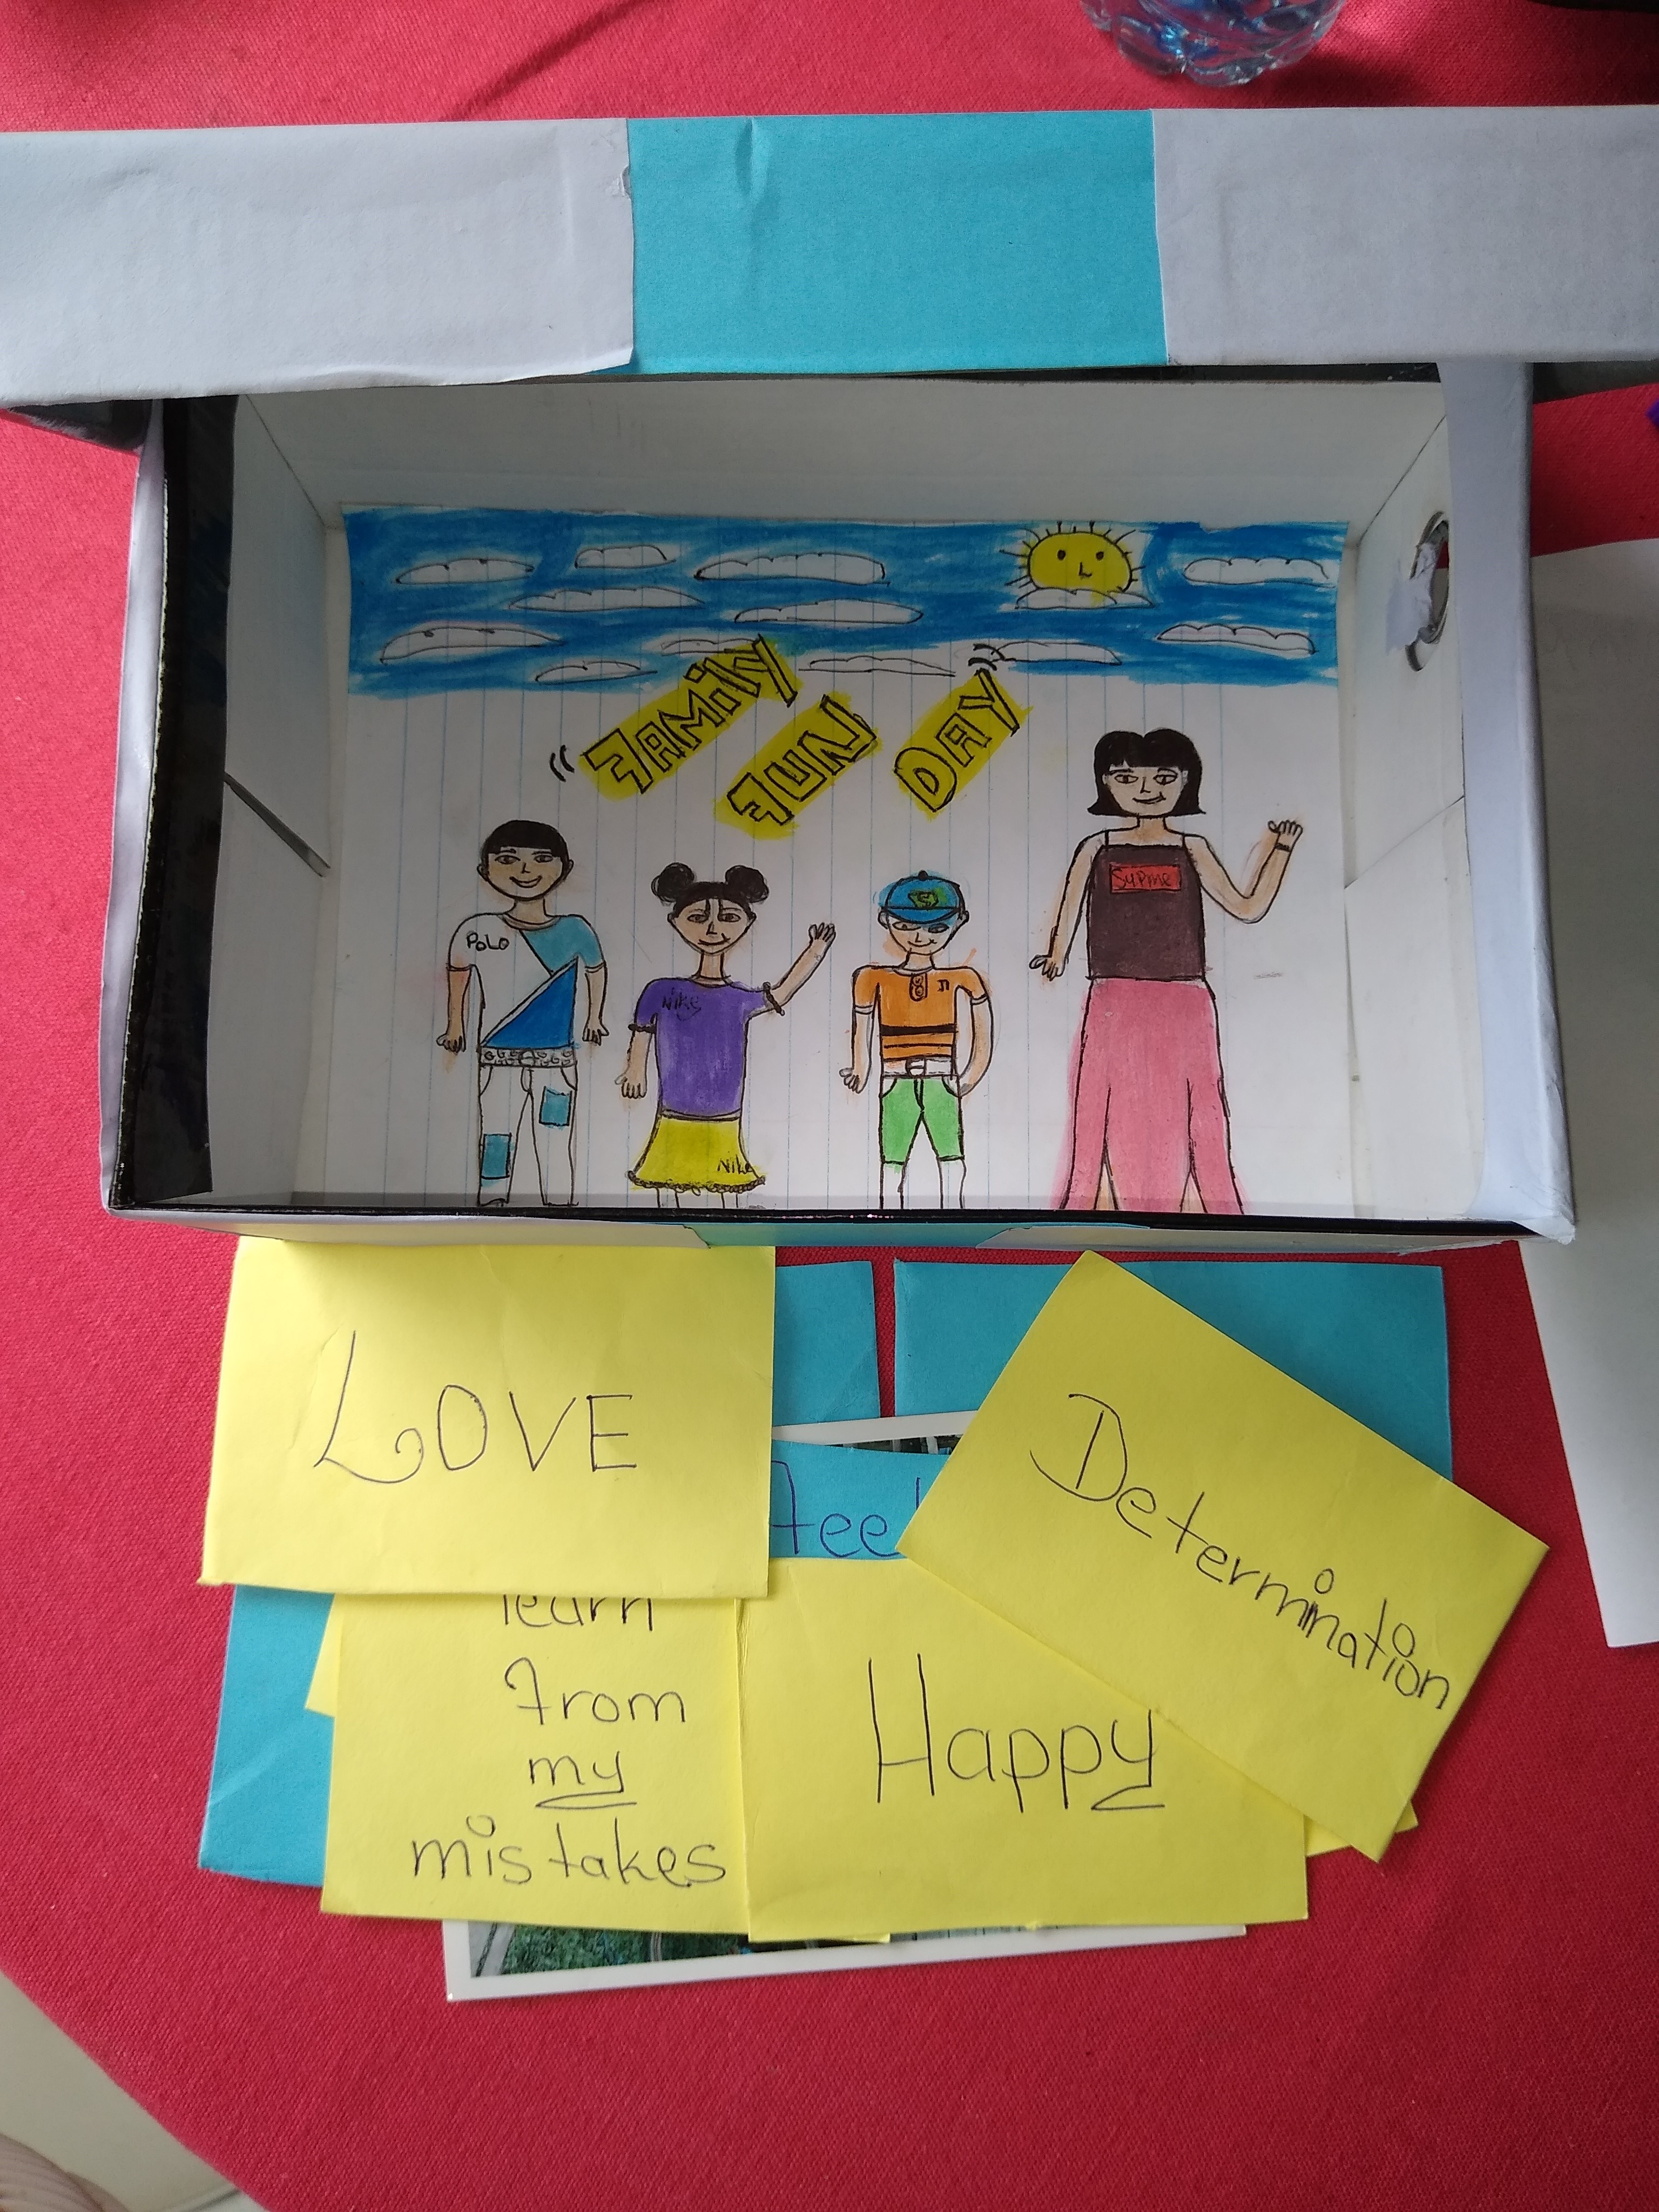 """Opened box from the previous picture showing a family waving hands and with sticky notes saying """"Love"""", """"Determination"""", """"learn from my mistakes"""" and """"Happy"""""""